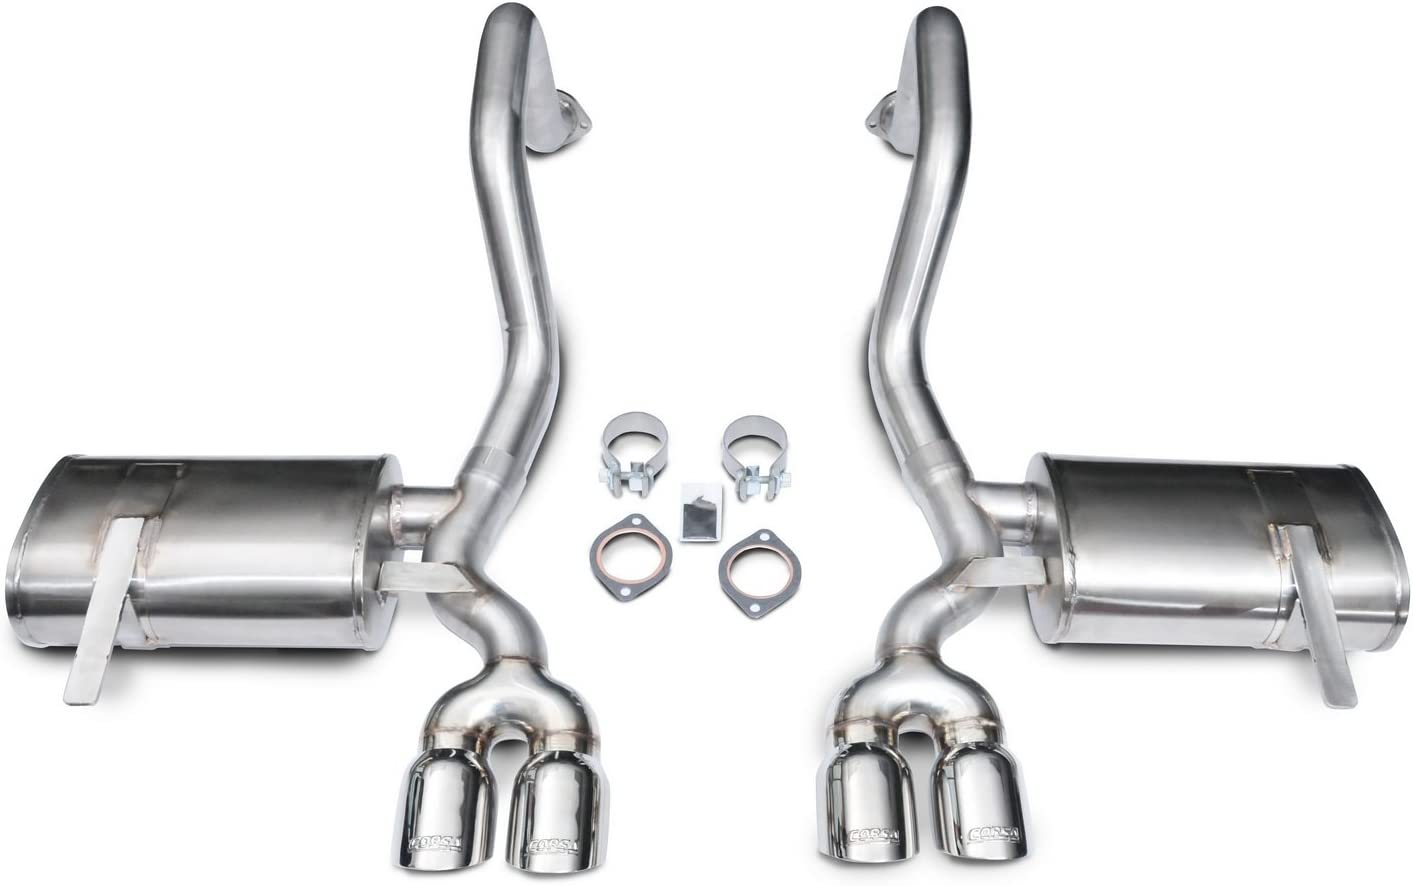 CORSA 14108 Sport 2.5 Diameter Stainless Steel Axle-Back Exhaust System Kit with Twin 3.5 Pro-Series Tips for Chevy Corvette